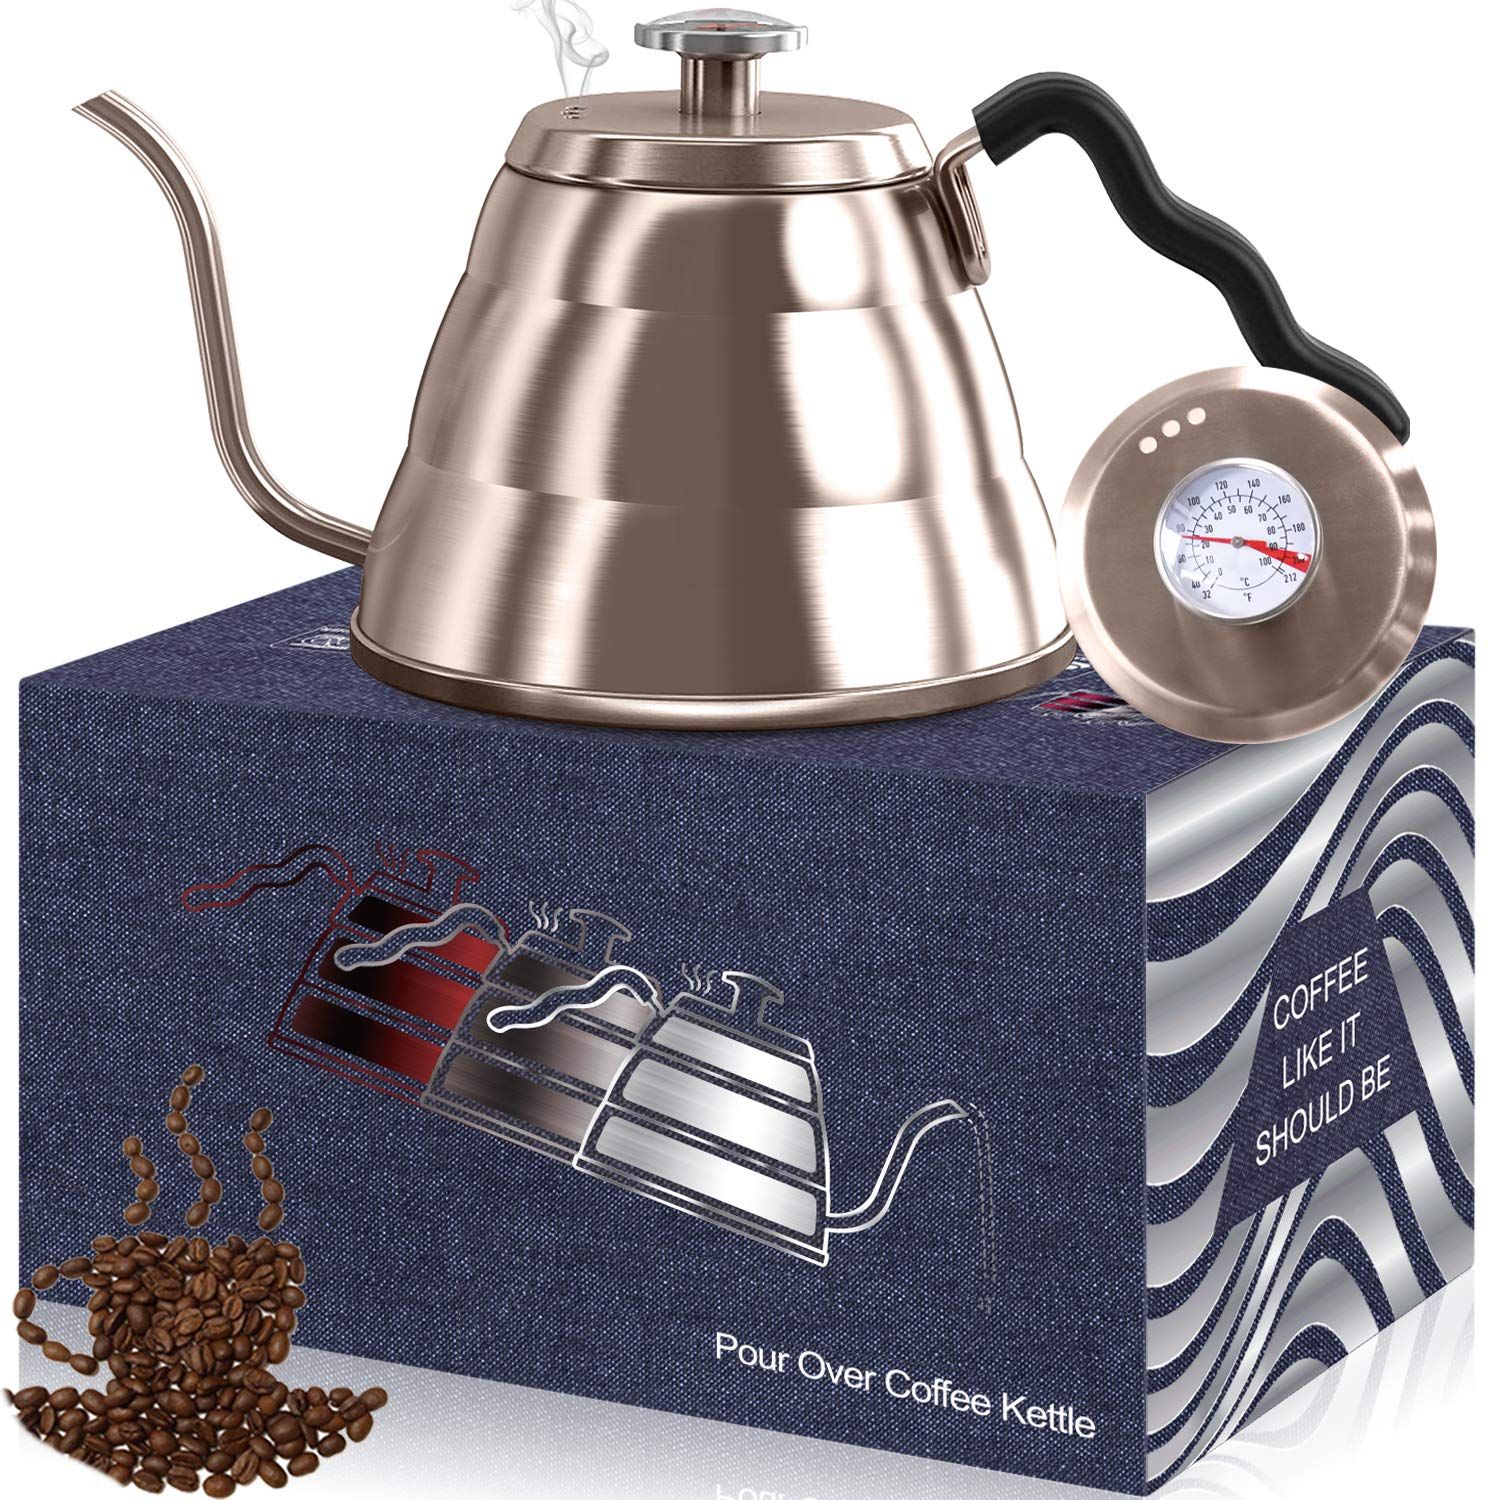 Dealz Frenzy Gooseneck Kettle - Pour Over Coffee Kettle with Exact Thermometer, Stovetop Tea Pot - Triple Layer 18/8 Stainless Steel Drip Kettle, Induction Stove and Fire Safe, FDA (34floz, champagne)